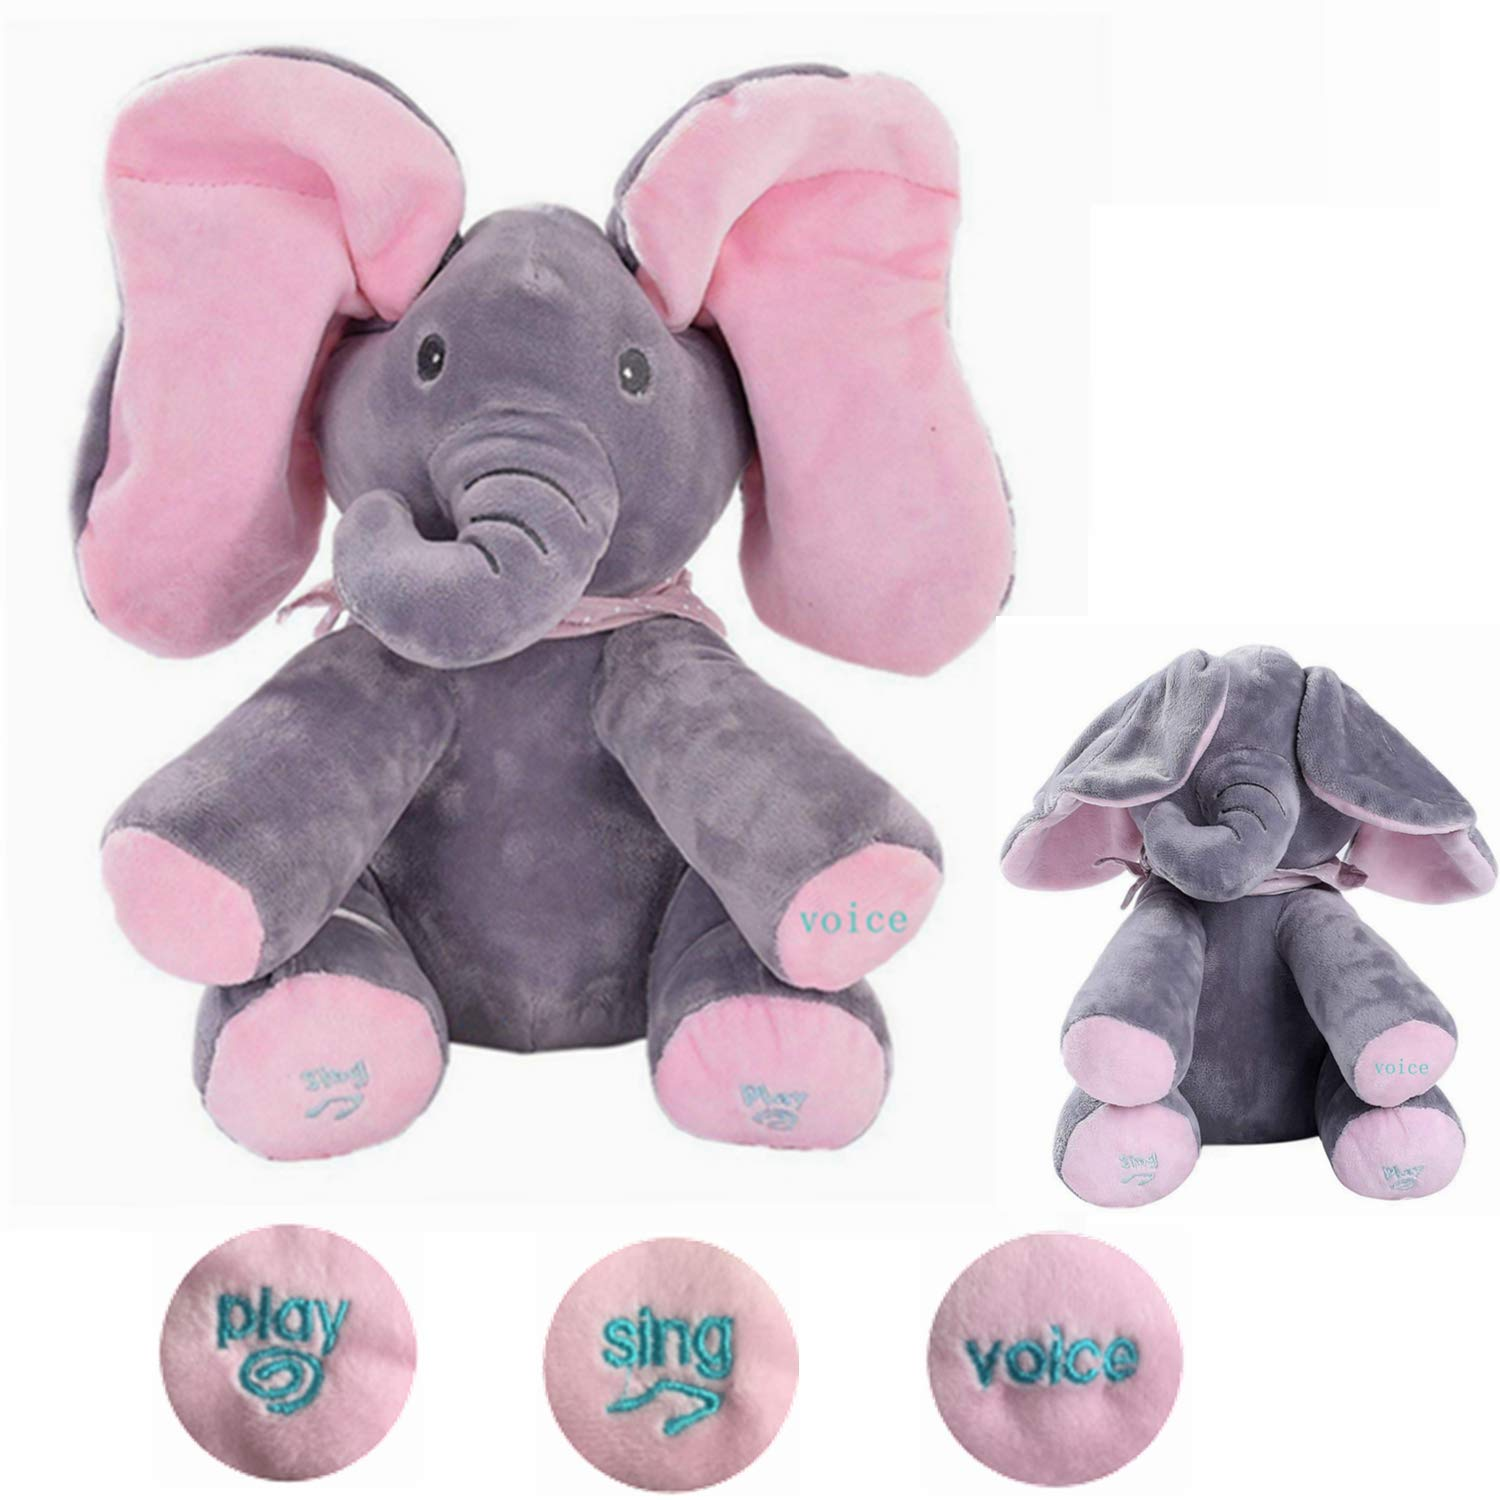 784f707c421 MLSH Cute Baby Toys Animated Flappy Elephant Plush Toy Peek A Boo Animal Doll  Plush Stuffed ...